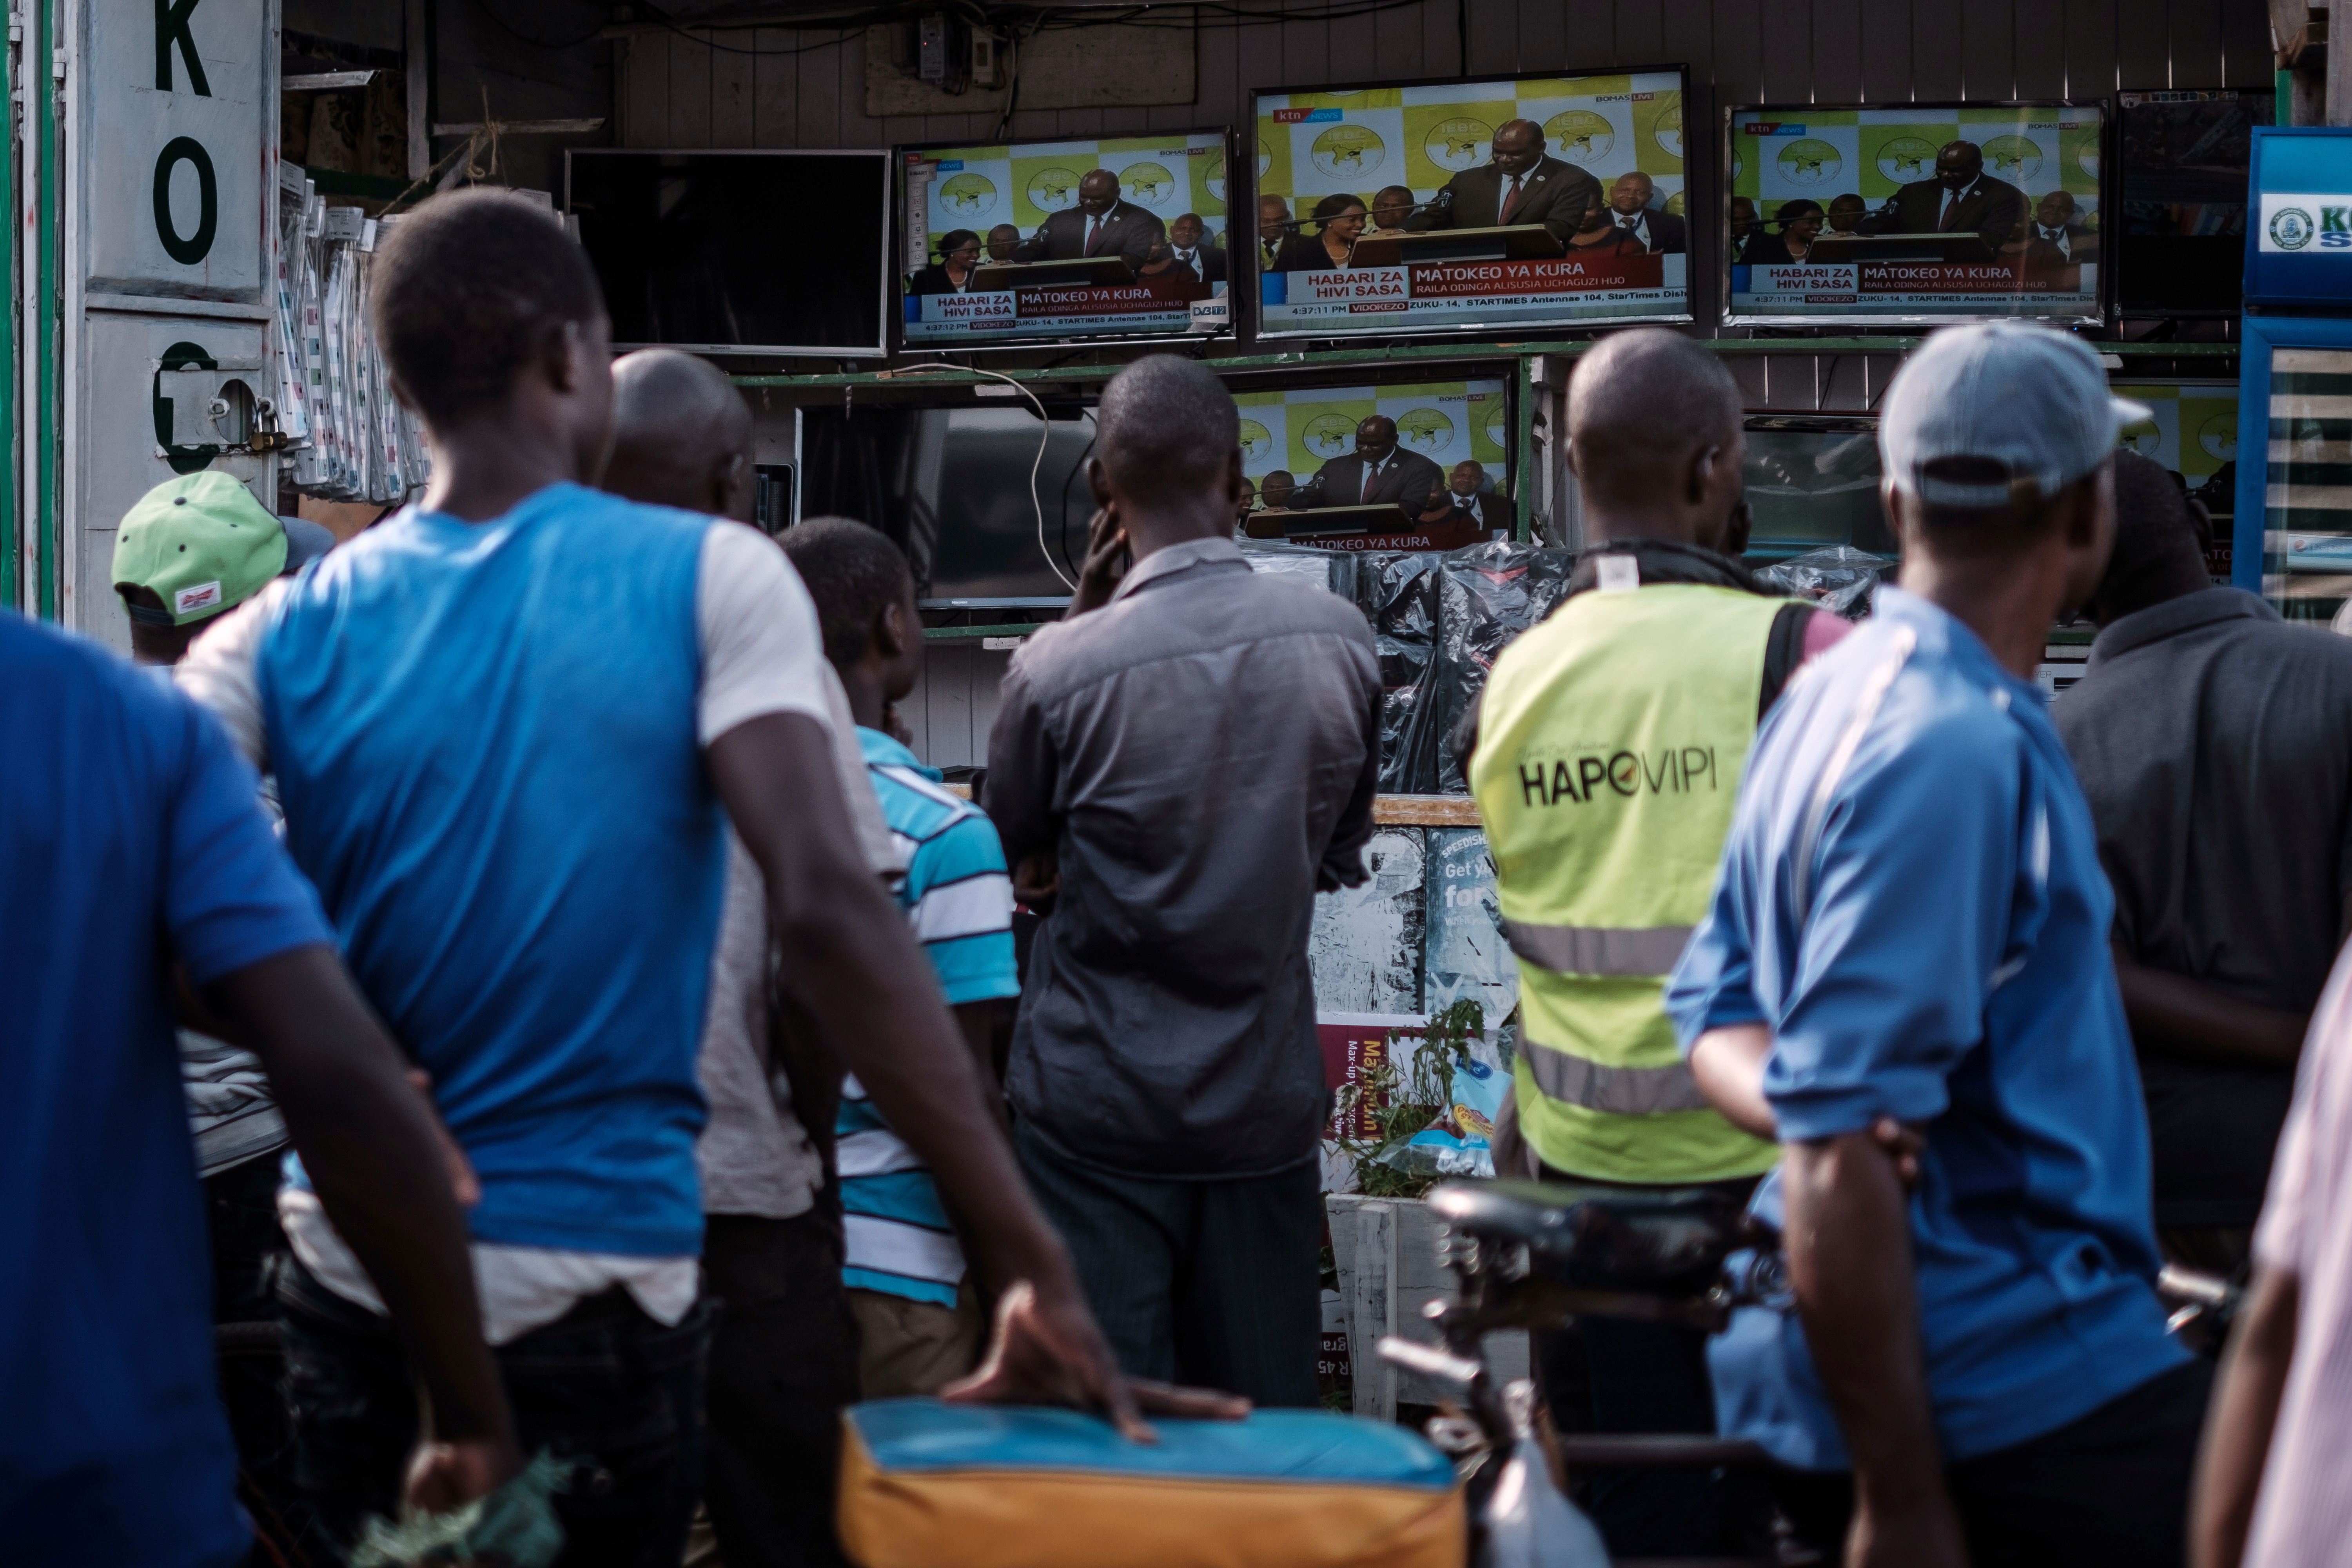 People watch a live broadcast of the announcement of the re-election results by Kenya's Independent Electoral and Boundaries Commission (IEBC) chairman, Wafula Chebukat, on TV at a local electrical shop in Kisumu, Oct. 30, 2017.